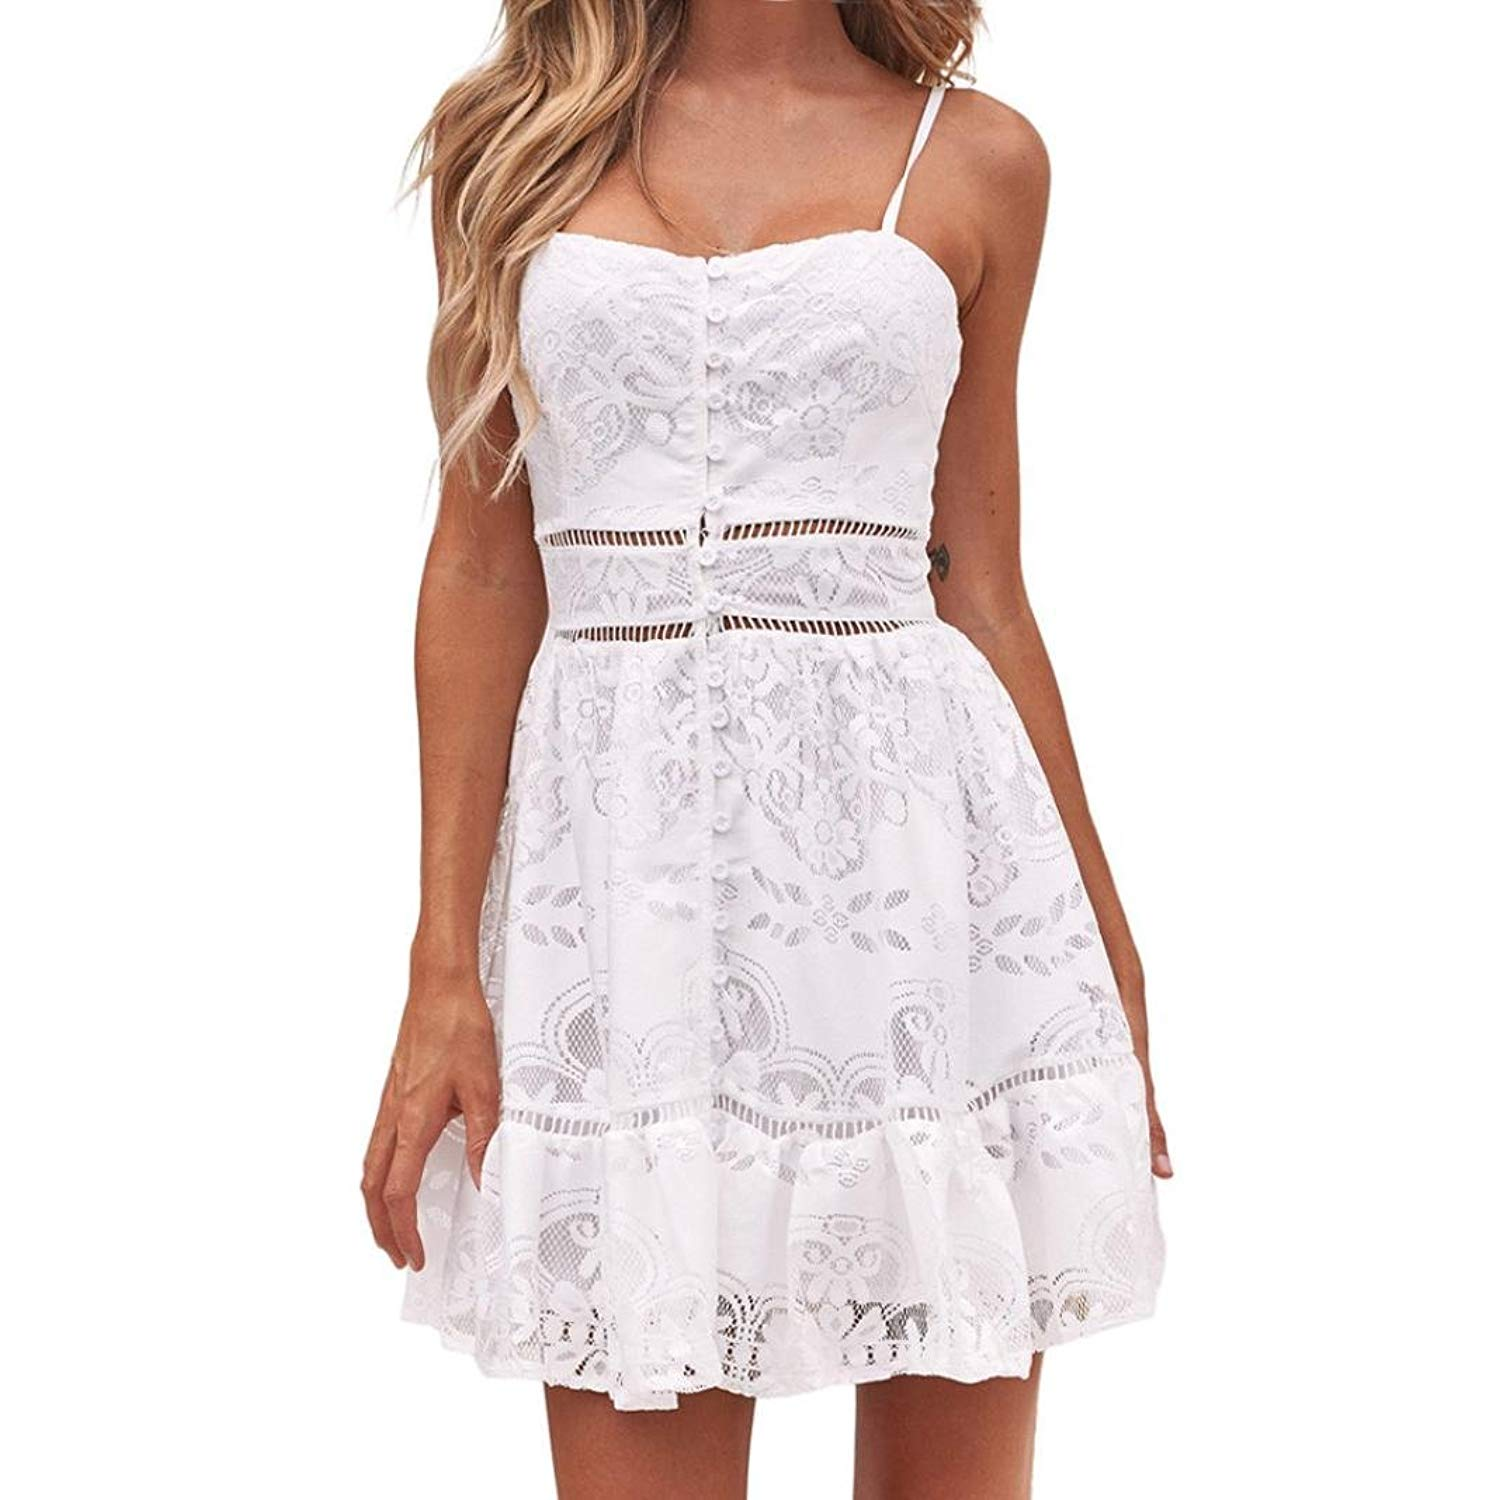 f29a64a9222c7 Cheap White Strappy Summer Dress, find White Strappy Summer Dress ...